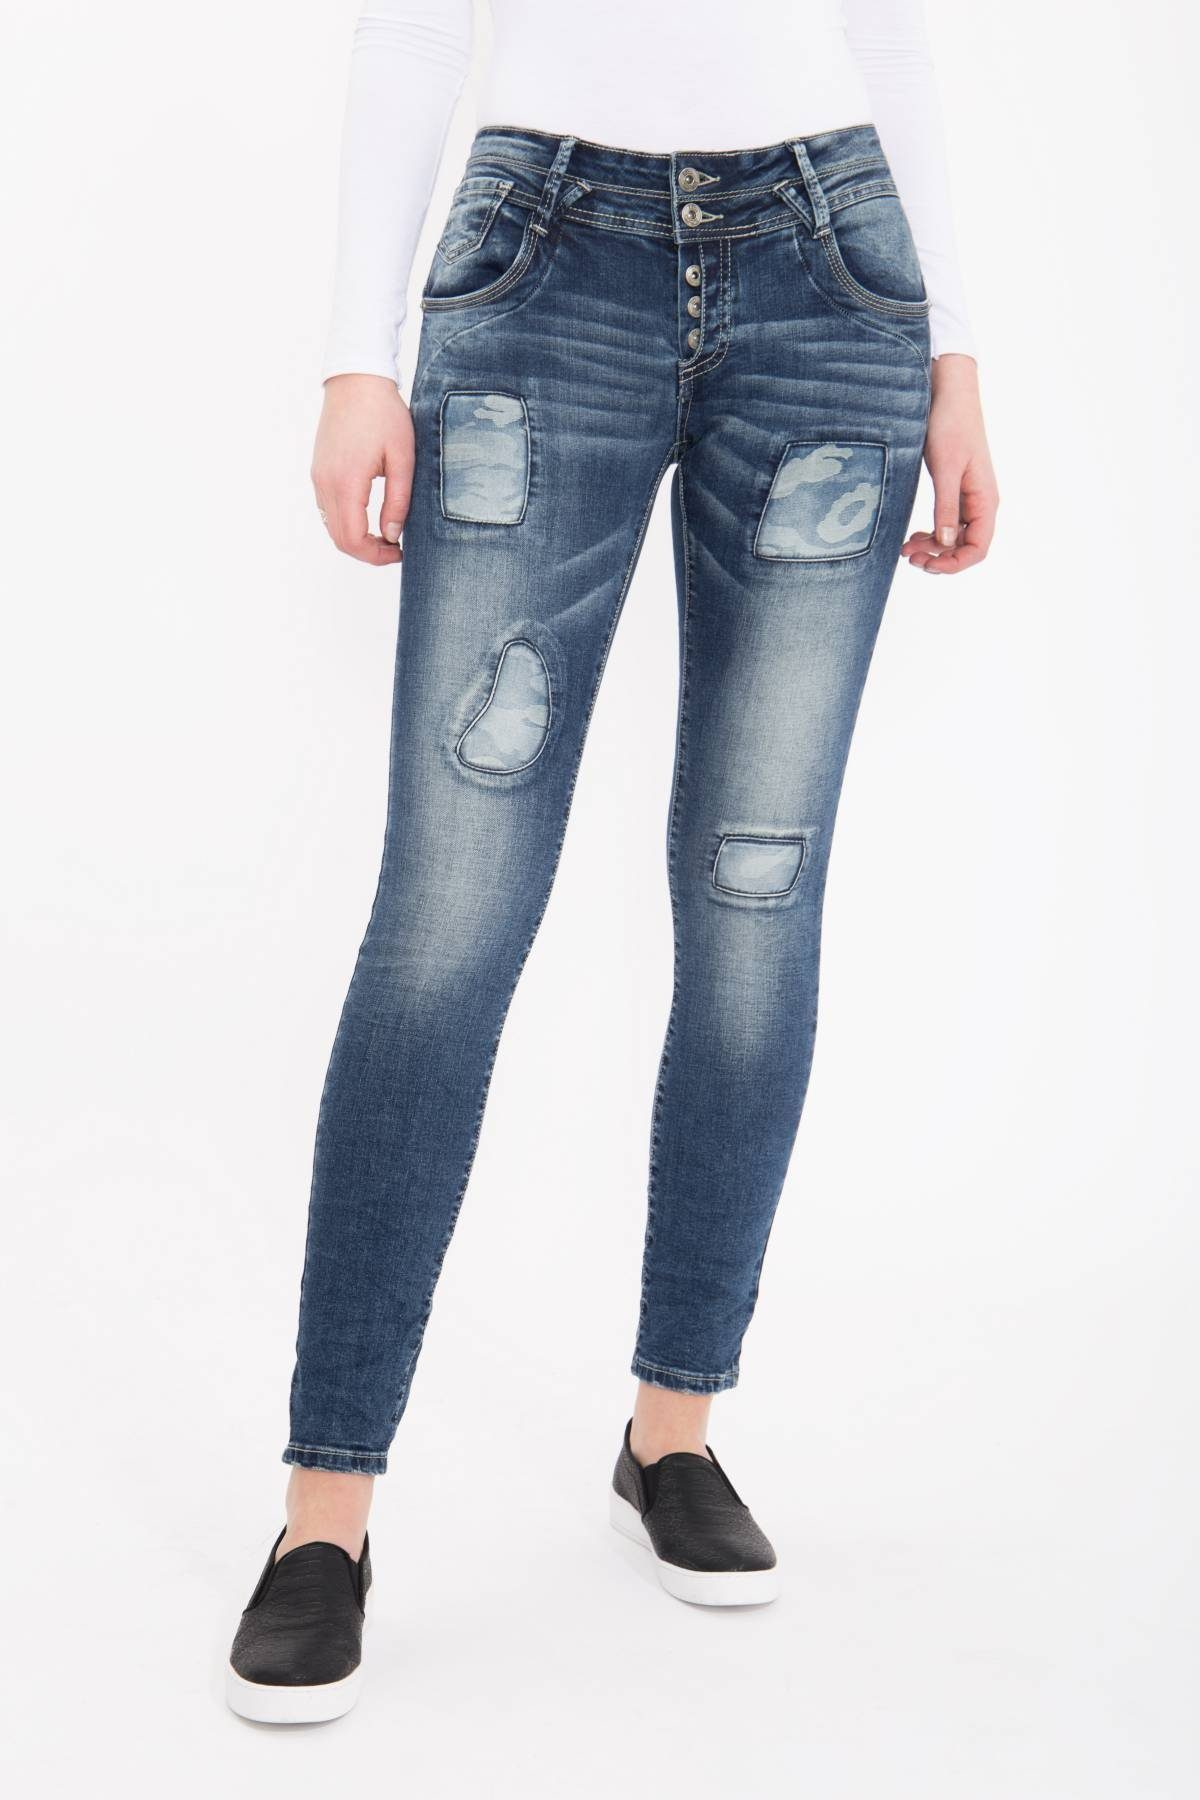 Blue Monkey Skinny-fit-Jeans Marie 1751 | 04251484618199